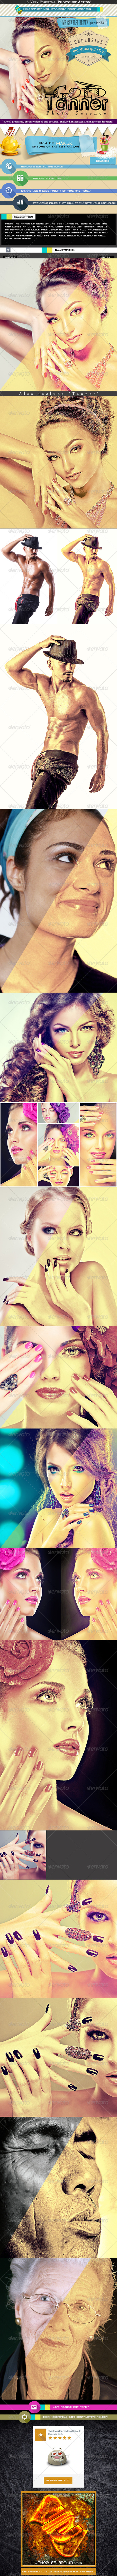 GraphicRiver Photo Science Golden Tanner 7416192